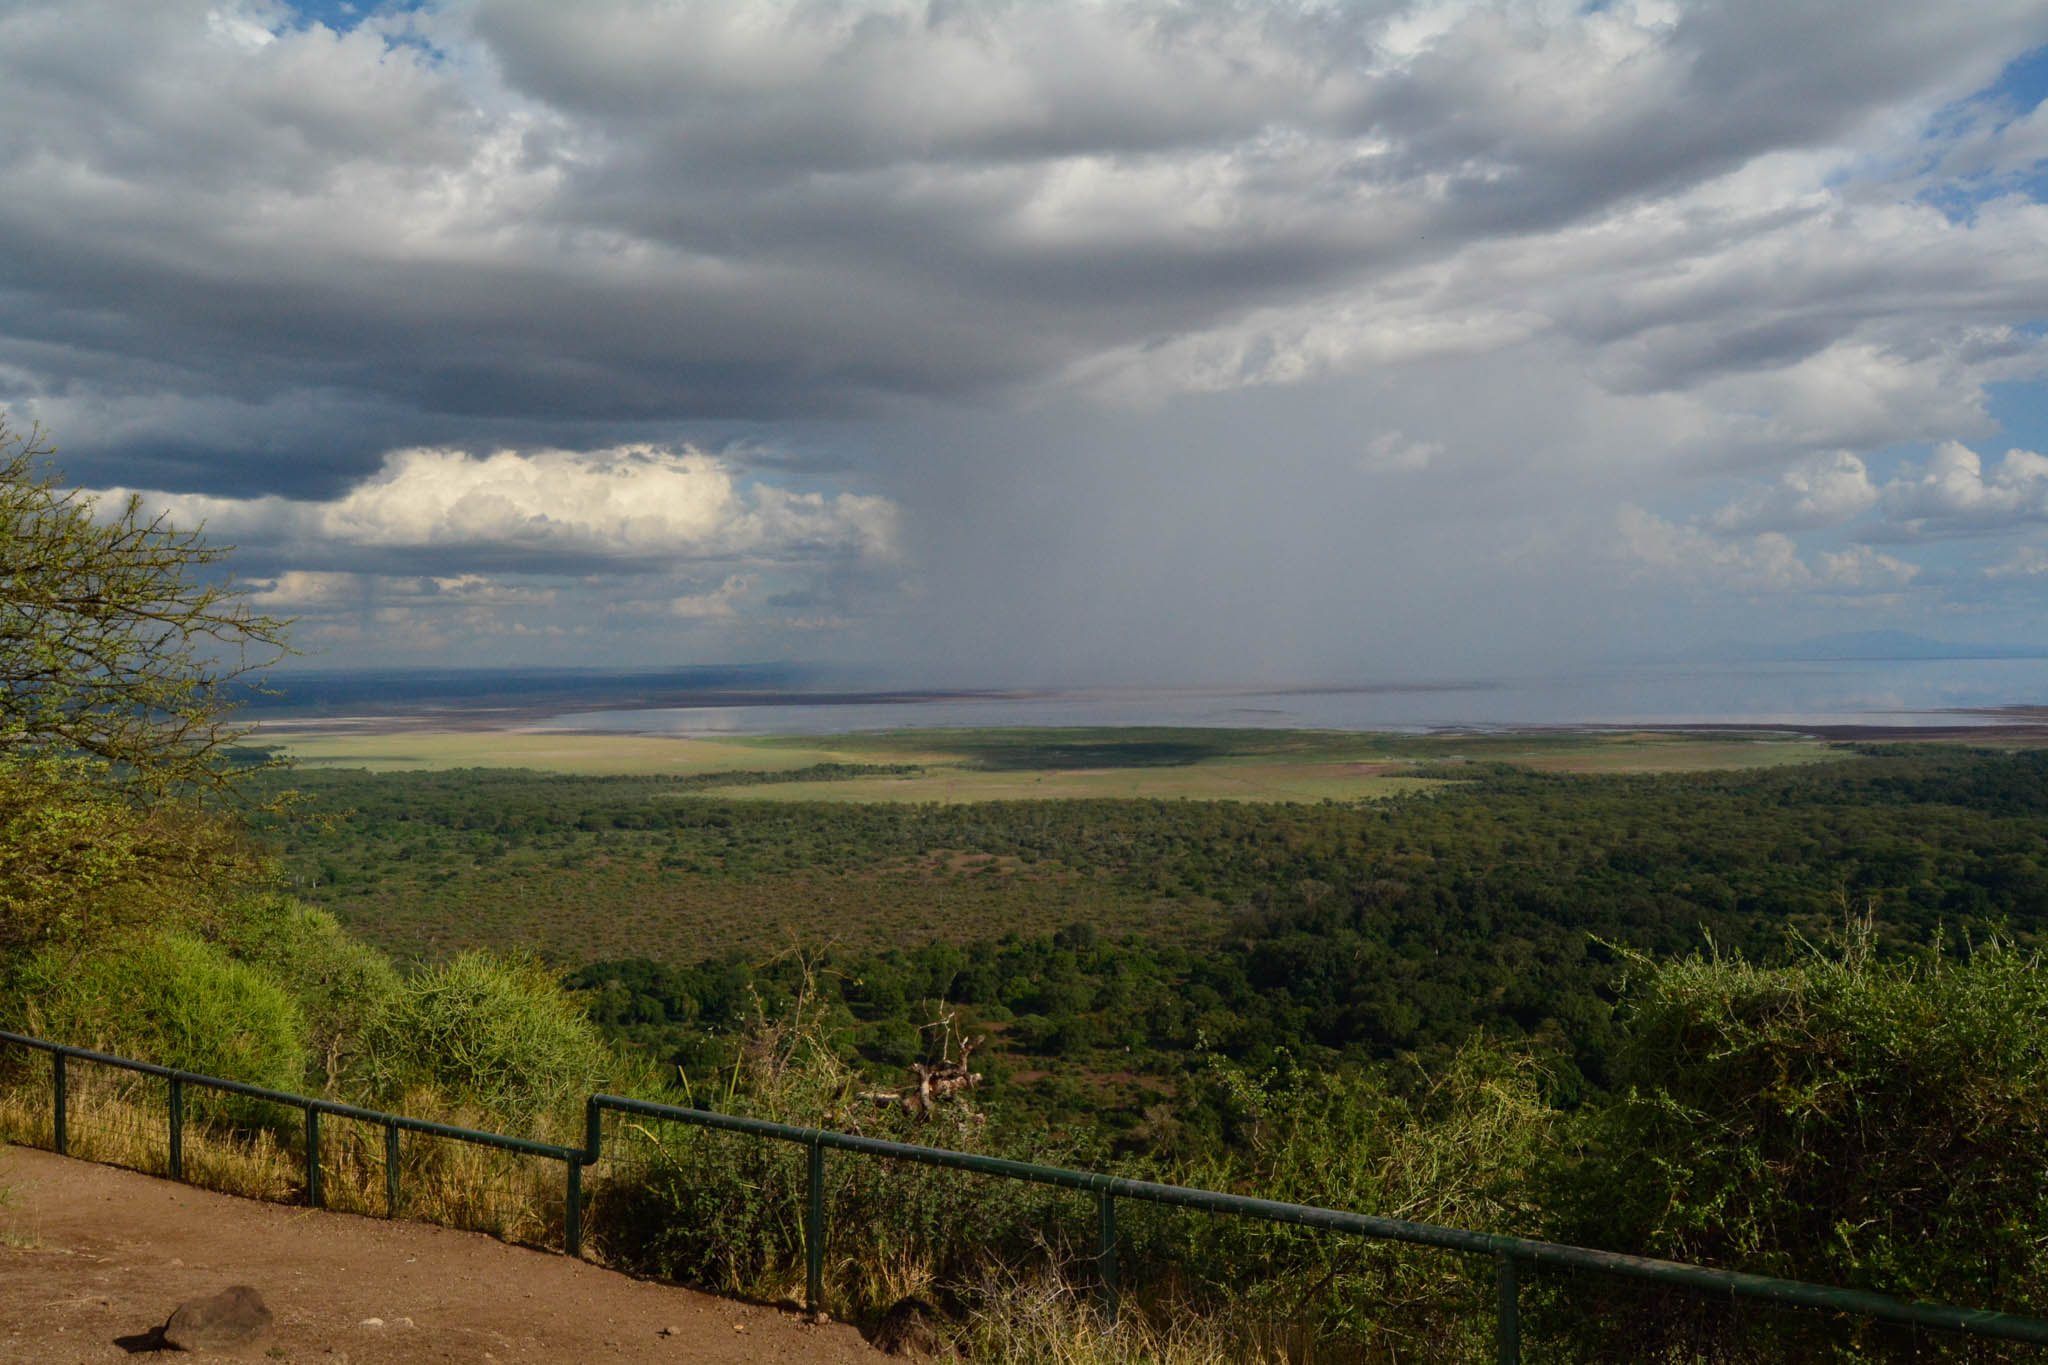 View Point for Lake Manyara on the way to Haven Nature Campsite